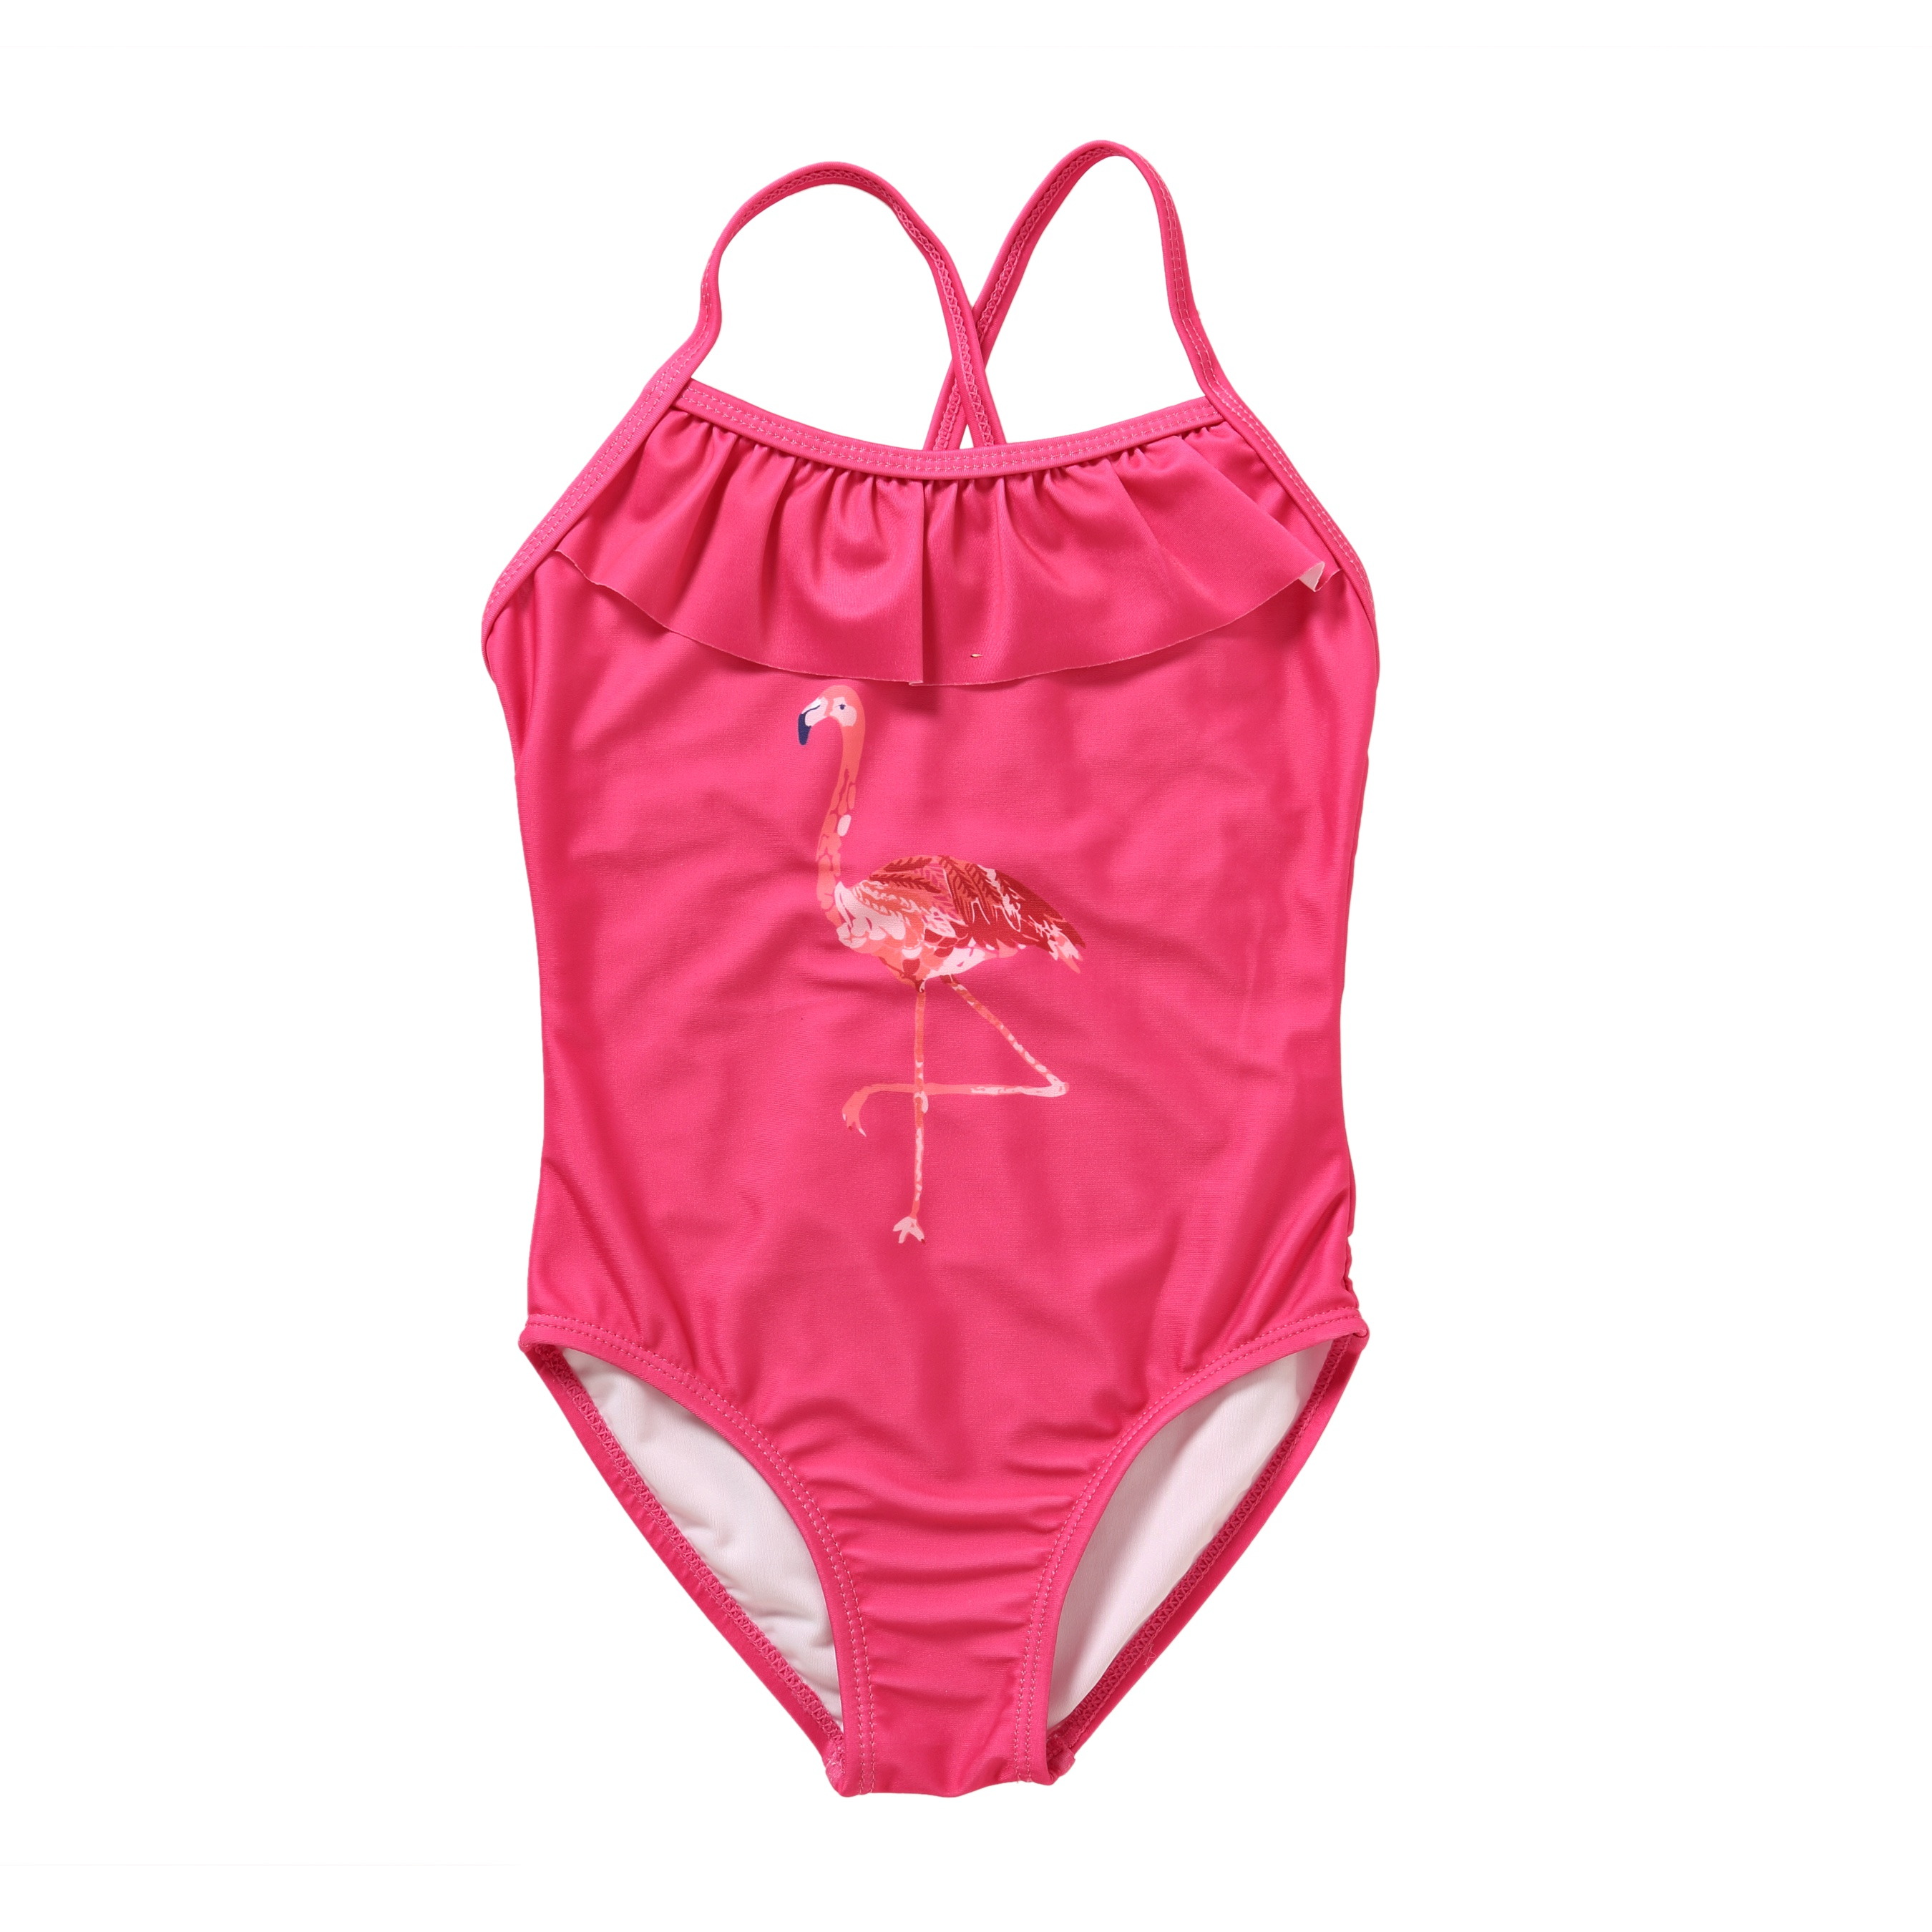 RB0323 Annie Swimsuit £18 www.rockinbaby.com